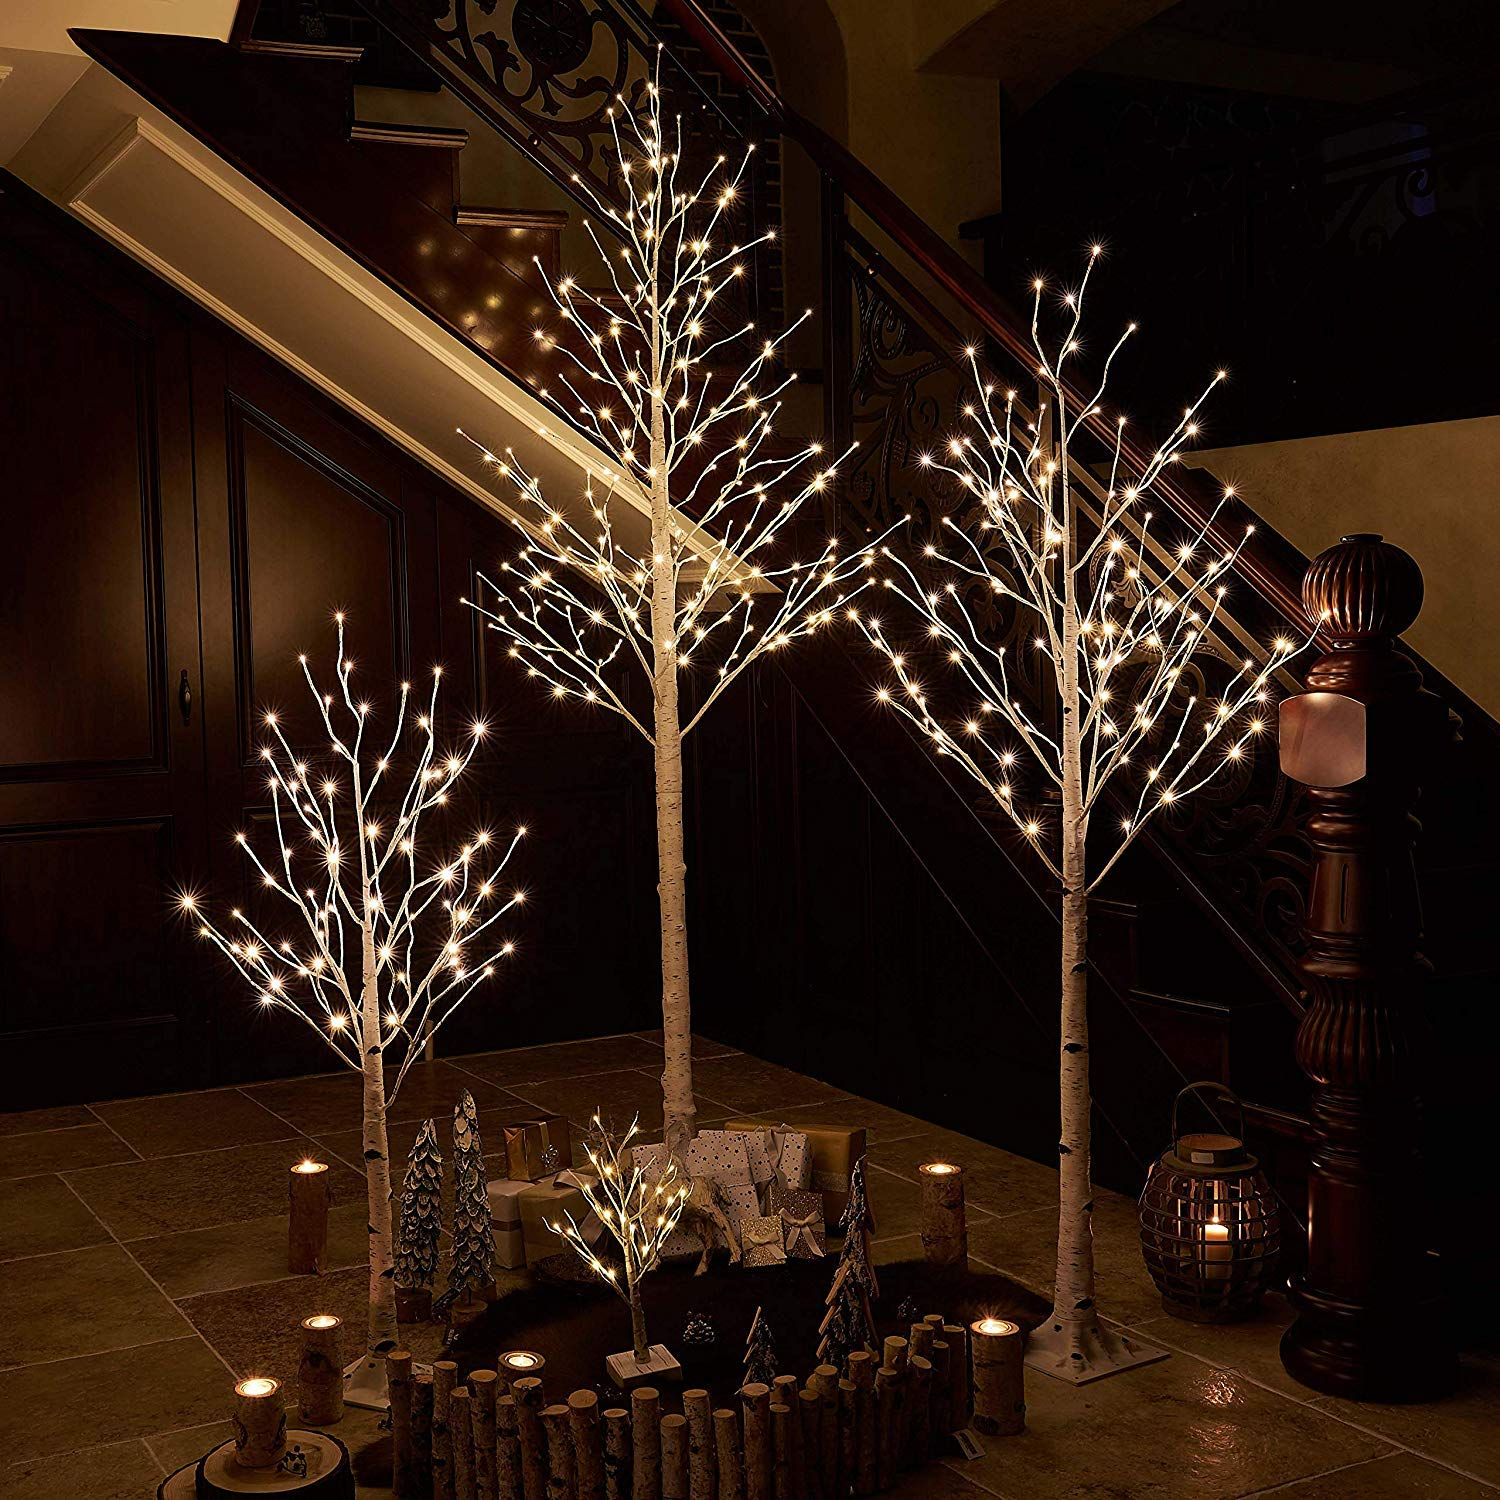 Prelit White Birch Tree with LED Lights 6FT 128L for Christmas Holiday Party Decorations Tree Plug in Indoor Outdoor Use